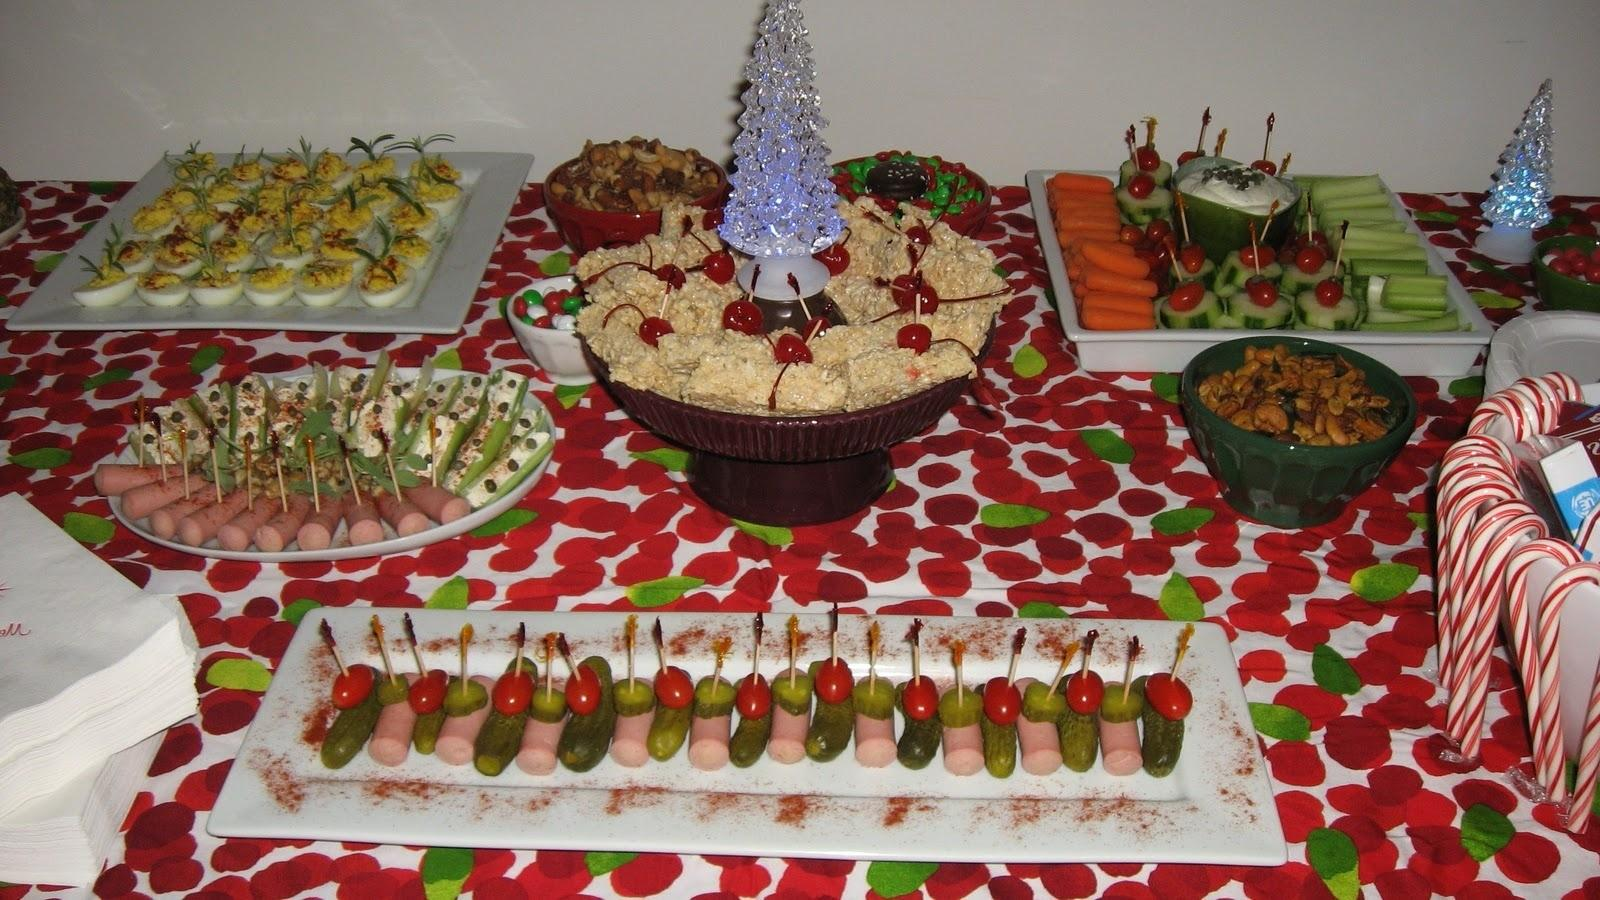 Christmas Decorations Food Homemade Edible